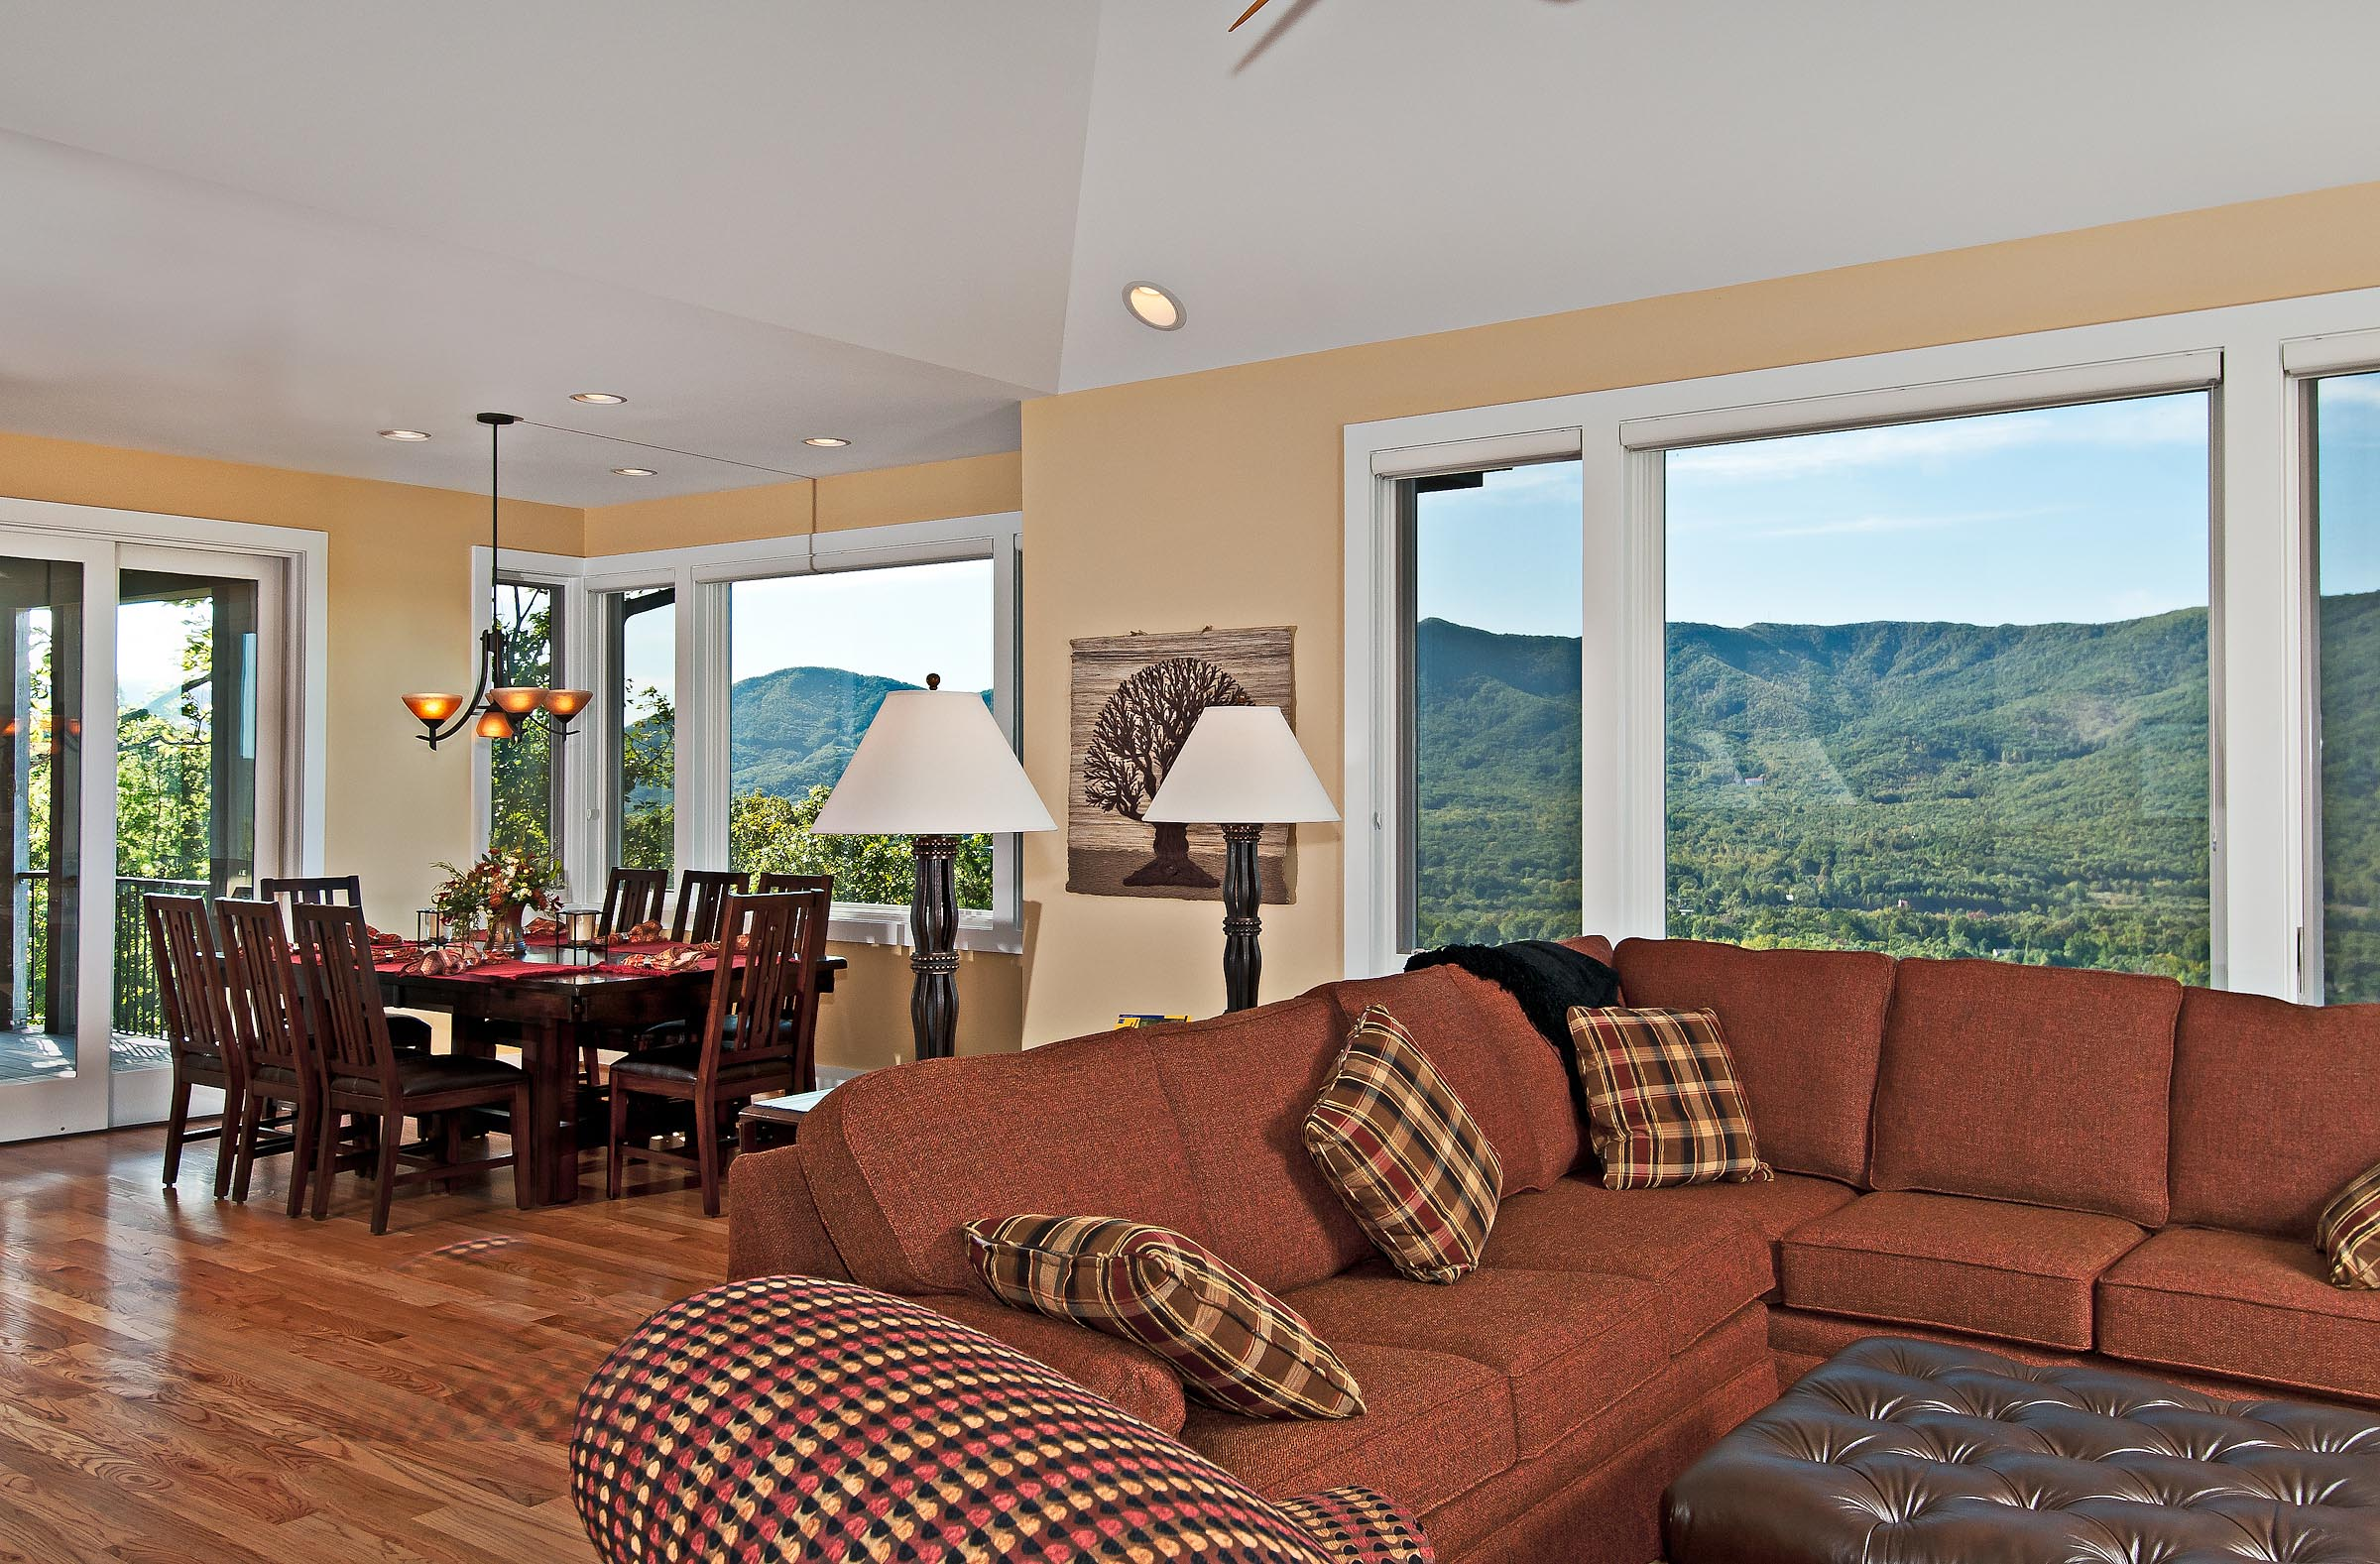 Custom home in Black Mountain, North Carolina with views across the Swannanoa Valley